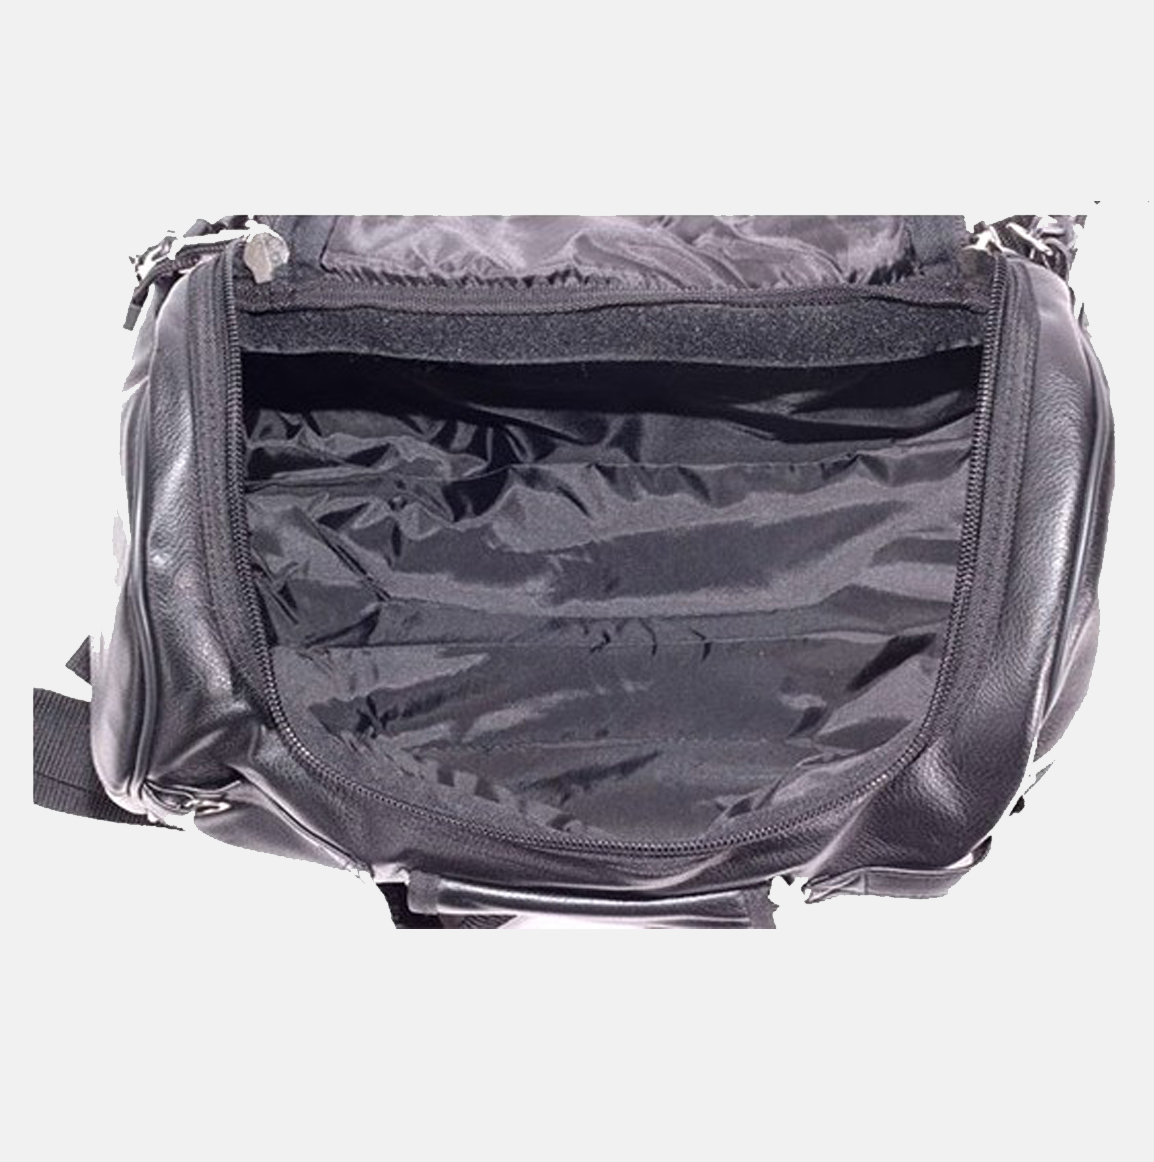 roll bags reviews